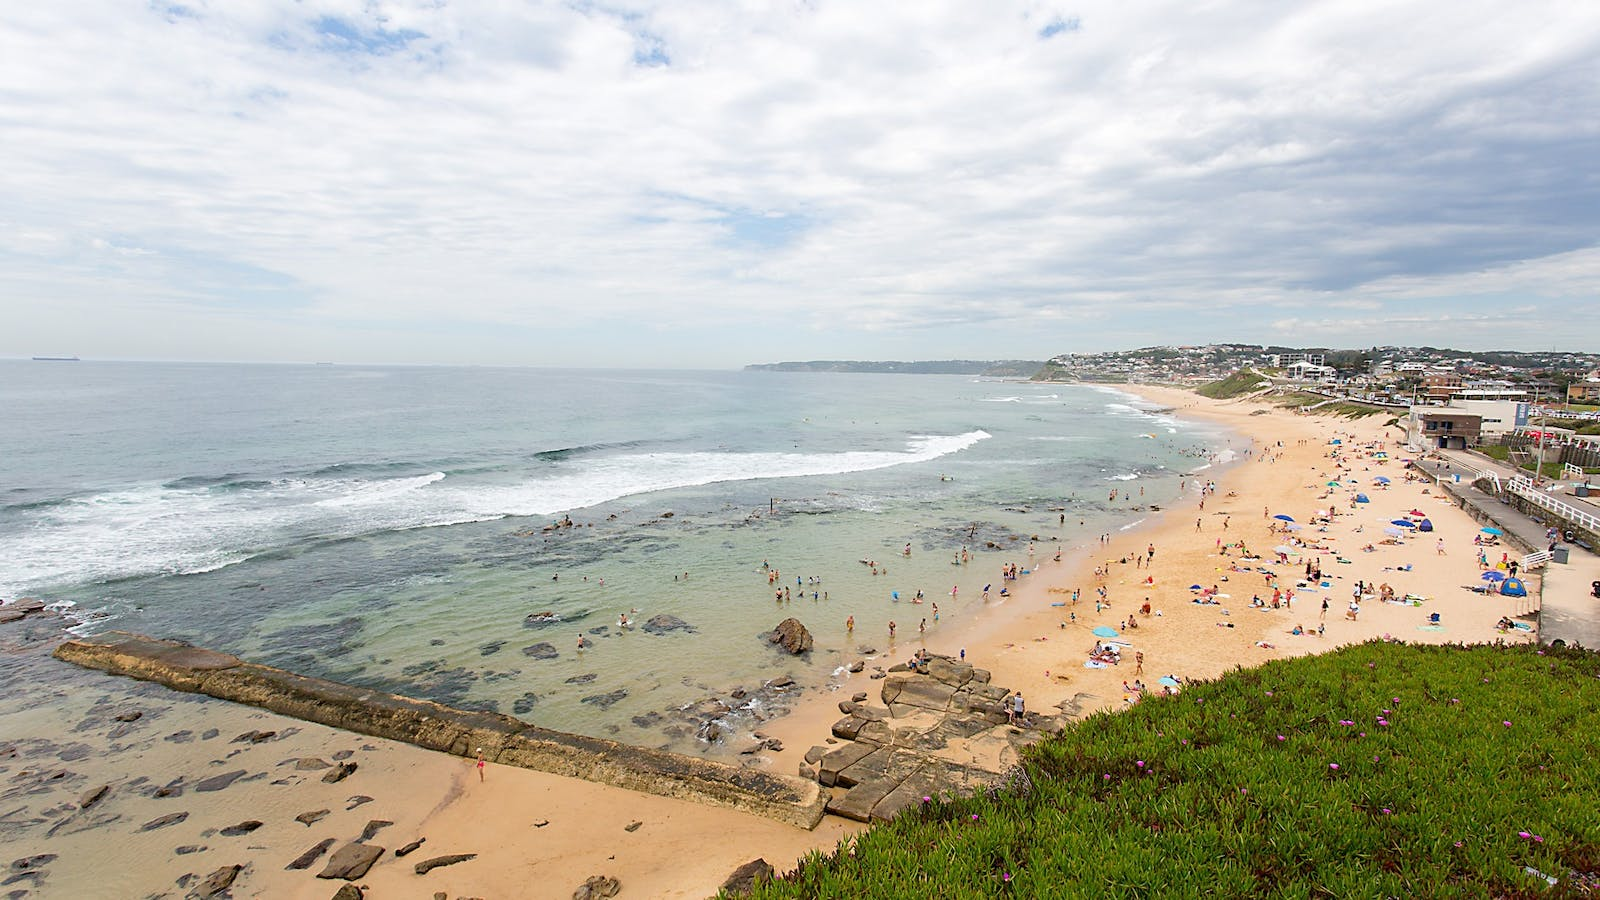 The Bathers Way City of Newcastle Image